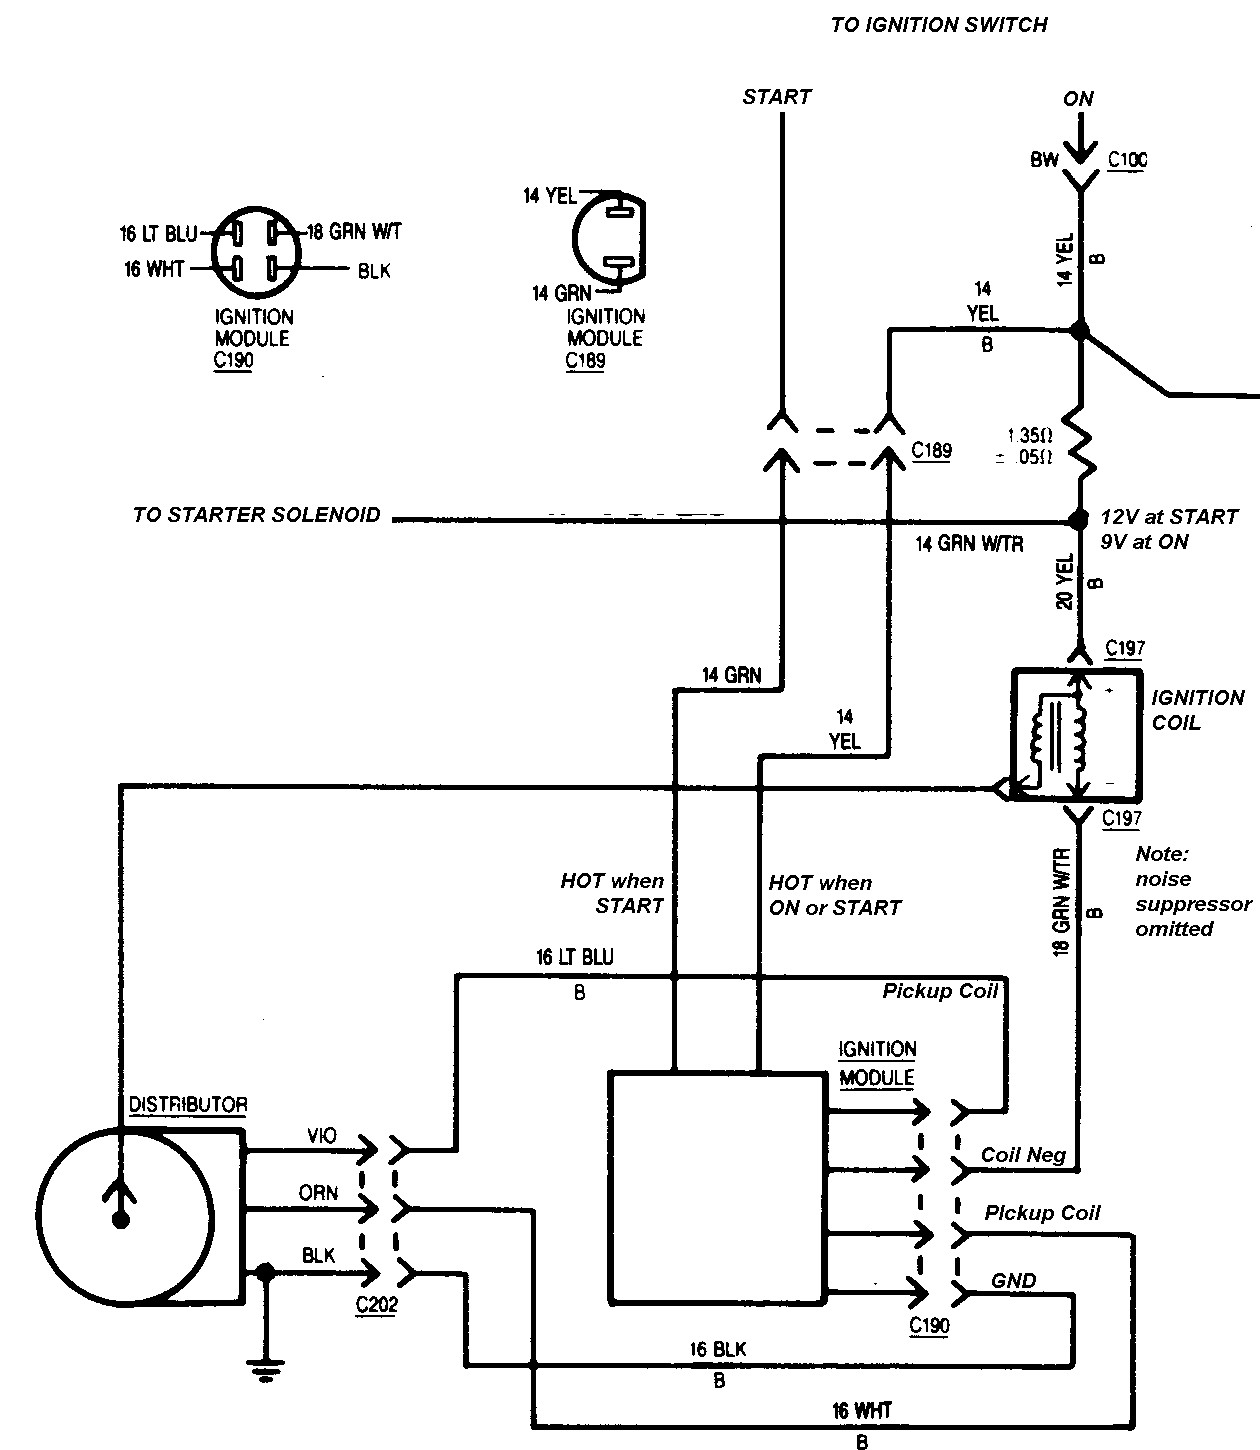 chevy v6 distributor wiring diagram schema wiring diagrams gm hei coil chevy v6 ignition wiring wiring [ 1260 x 1450 Pixel ]